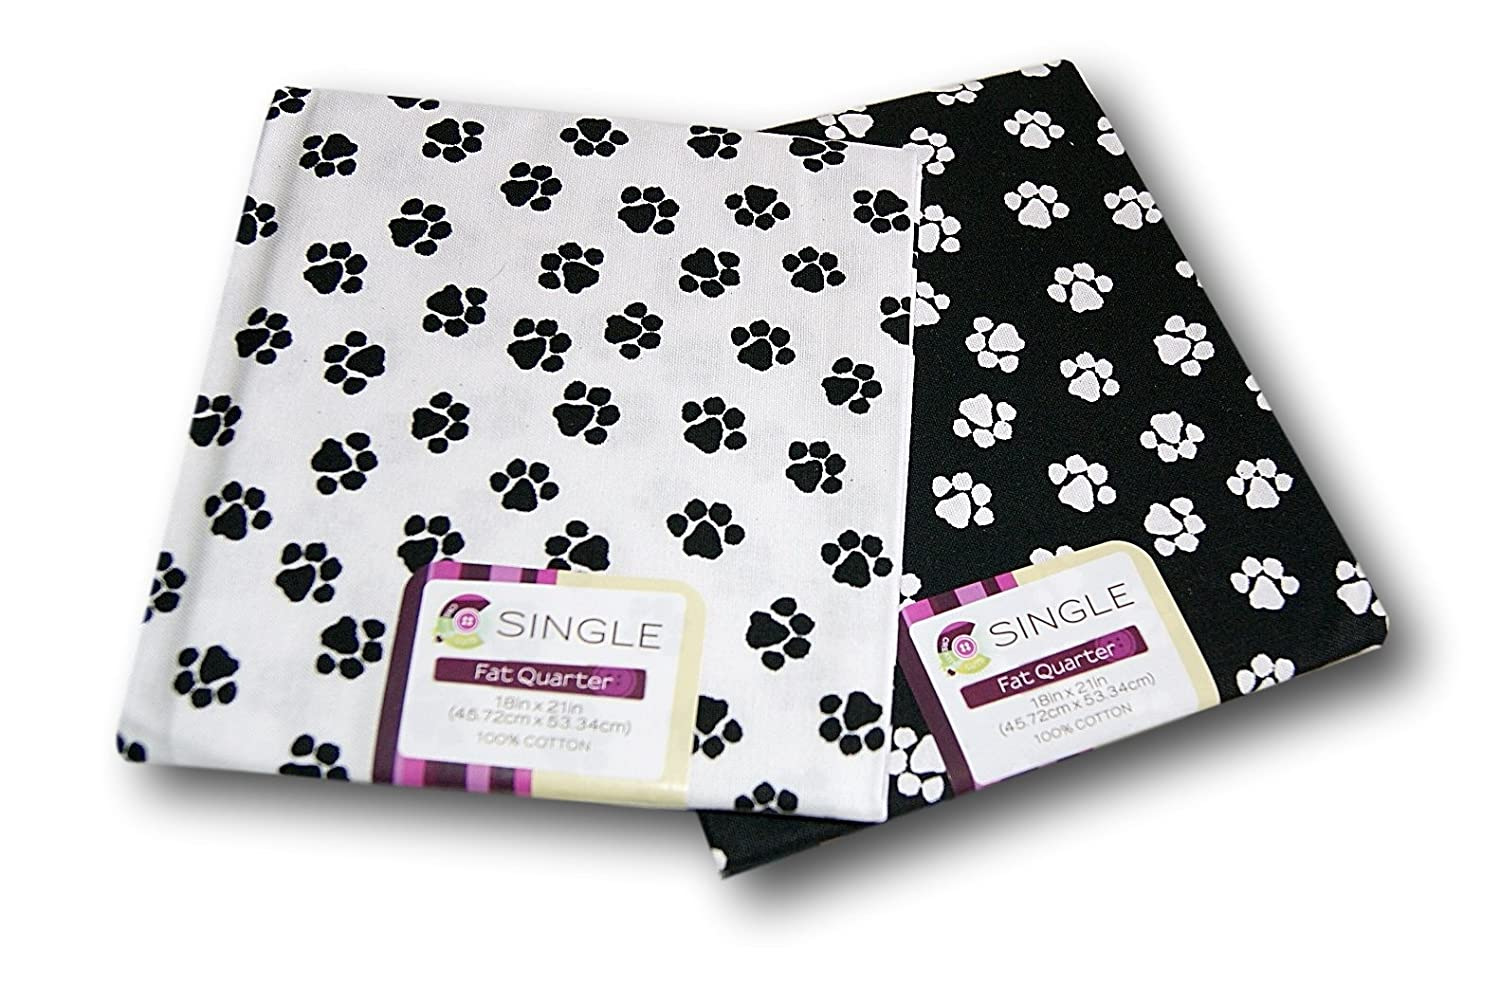 Creative Cuts Paw Prints Fat Quarters Bundle - Black and White Pattern Theme Fabric Editions 4336917314